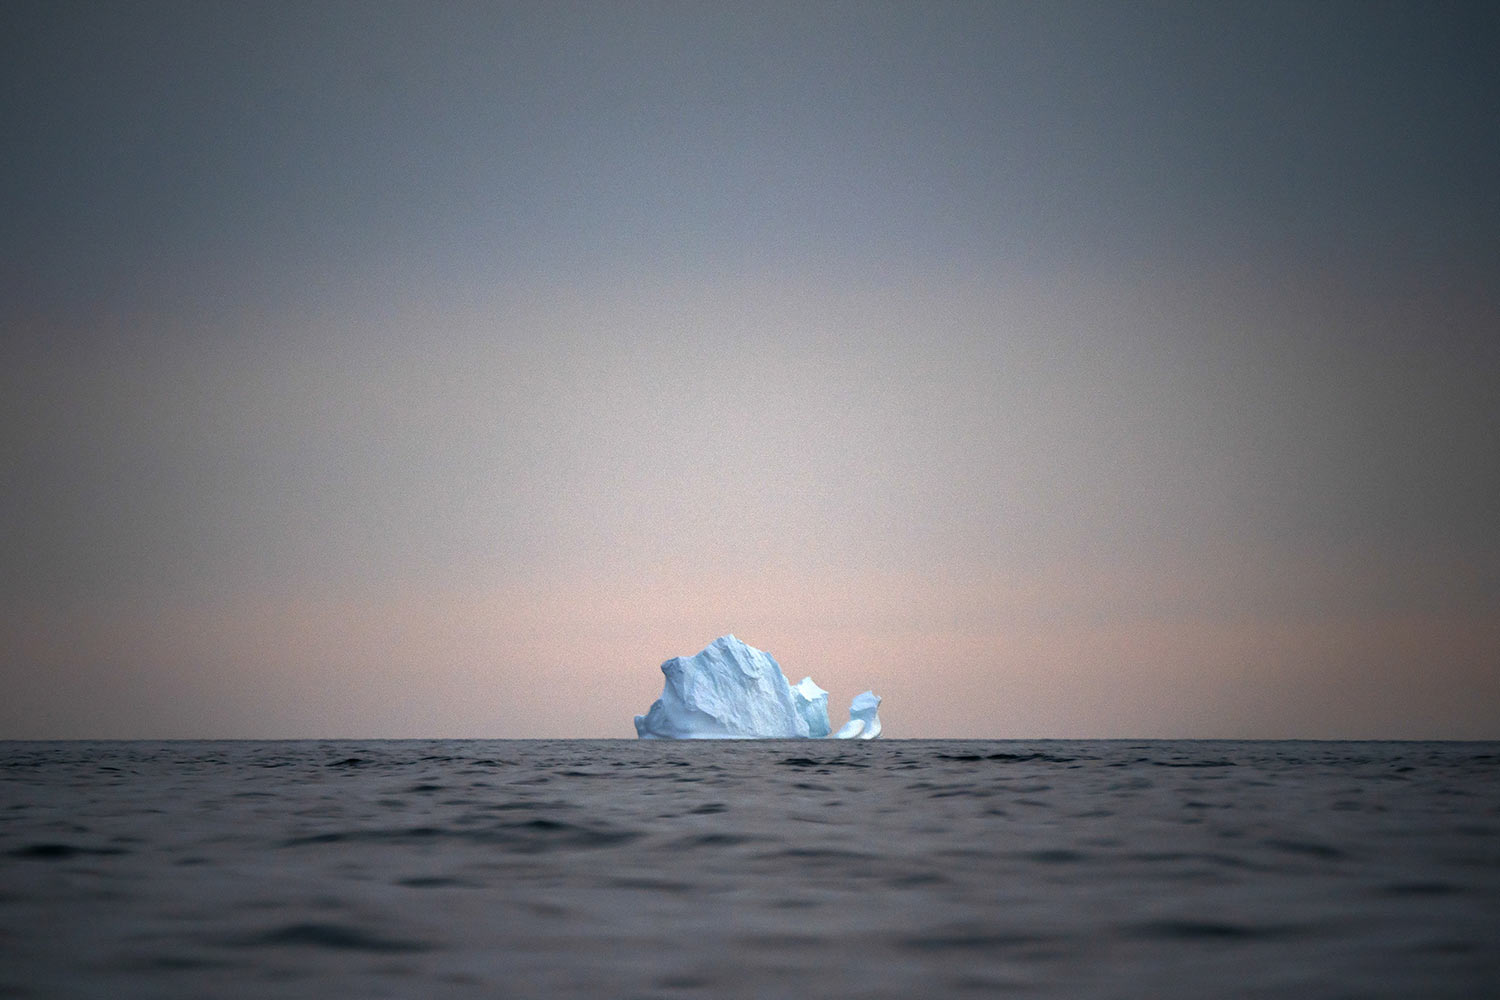 A large Iceberg floats away as the sun sets on Aug. 15, 2019, near Kulusuk, Greenland. Greenland is where Earth's refrigerator door is left open, where glaciers dwindle and seas begin to rise. Scientists are hard at work there, trying to understand the alarmingly rapid melting of the ice. For Greenland is where the planet's future is being written. (AP Photo/Felipe Dana)